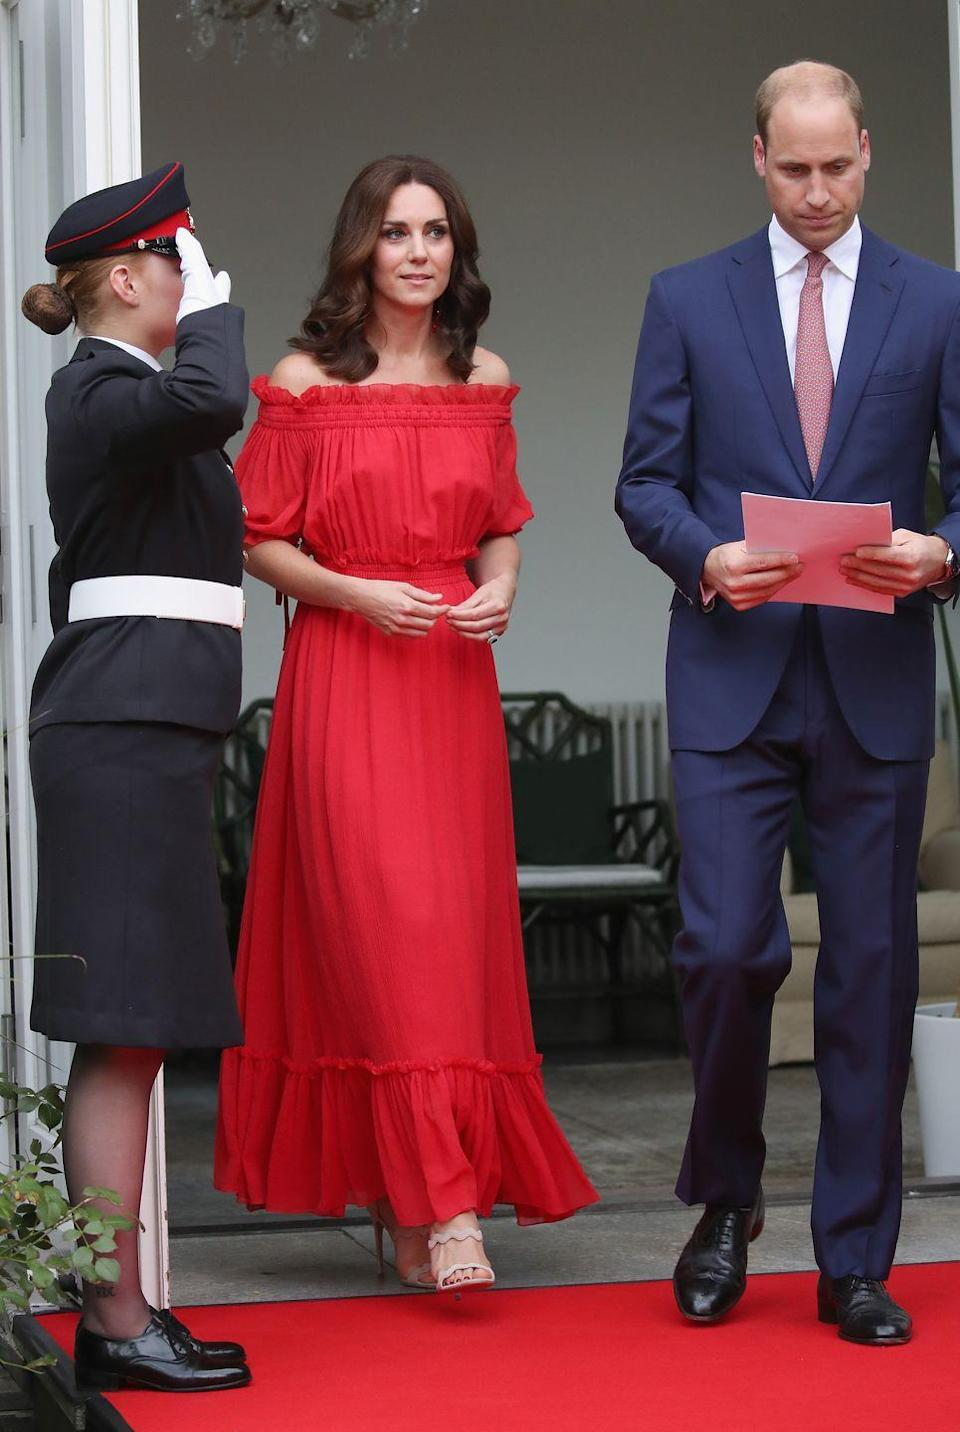 "<p>The Duchess wore a maxi dress by Alexander McQueen <a href=""https://www.townandcountrymag.com/society/tradition/g10295873/kate-william-royal-family-tour-germany-poland-2017/"" rel=""nofollow noopener"" target=""_blank"" data-ylk=""slk:to a garden party held in the Queen's honor"" class=""link rapid-noclick-resp"">to a garden party held in the Queen's honor</a> while in Berlin during the royal tour. She paired the summery dress with scalloped sandals by Prada. </p>"